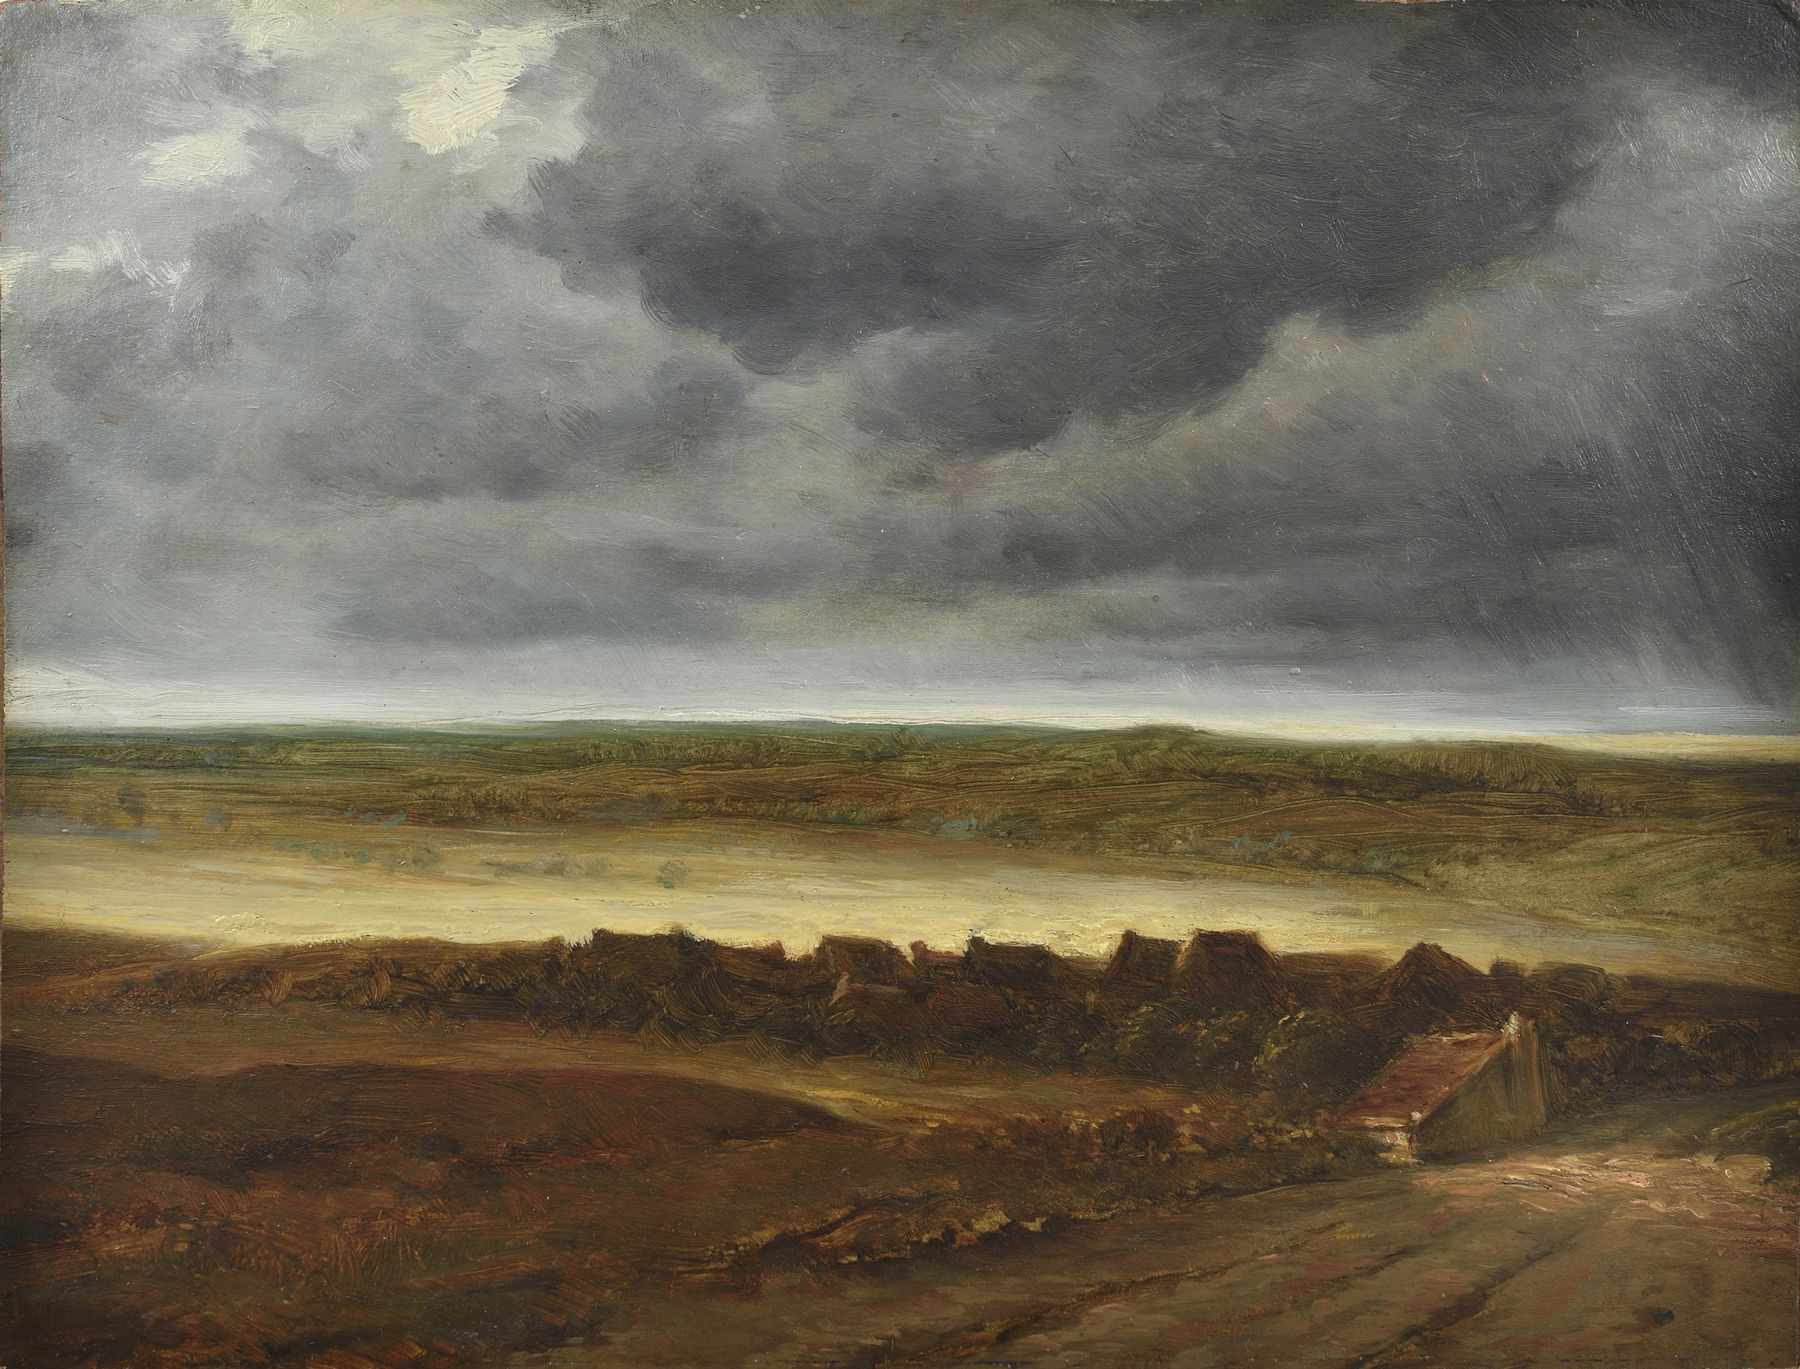 Georges Michel, Landscape with Houses, Oil on board 13 1/4 x 17 inches